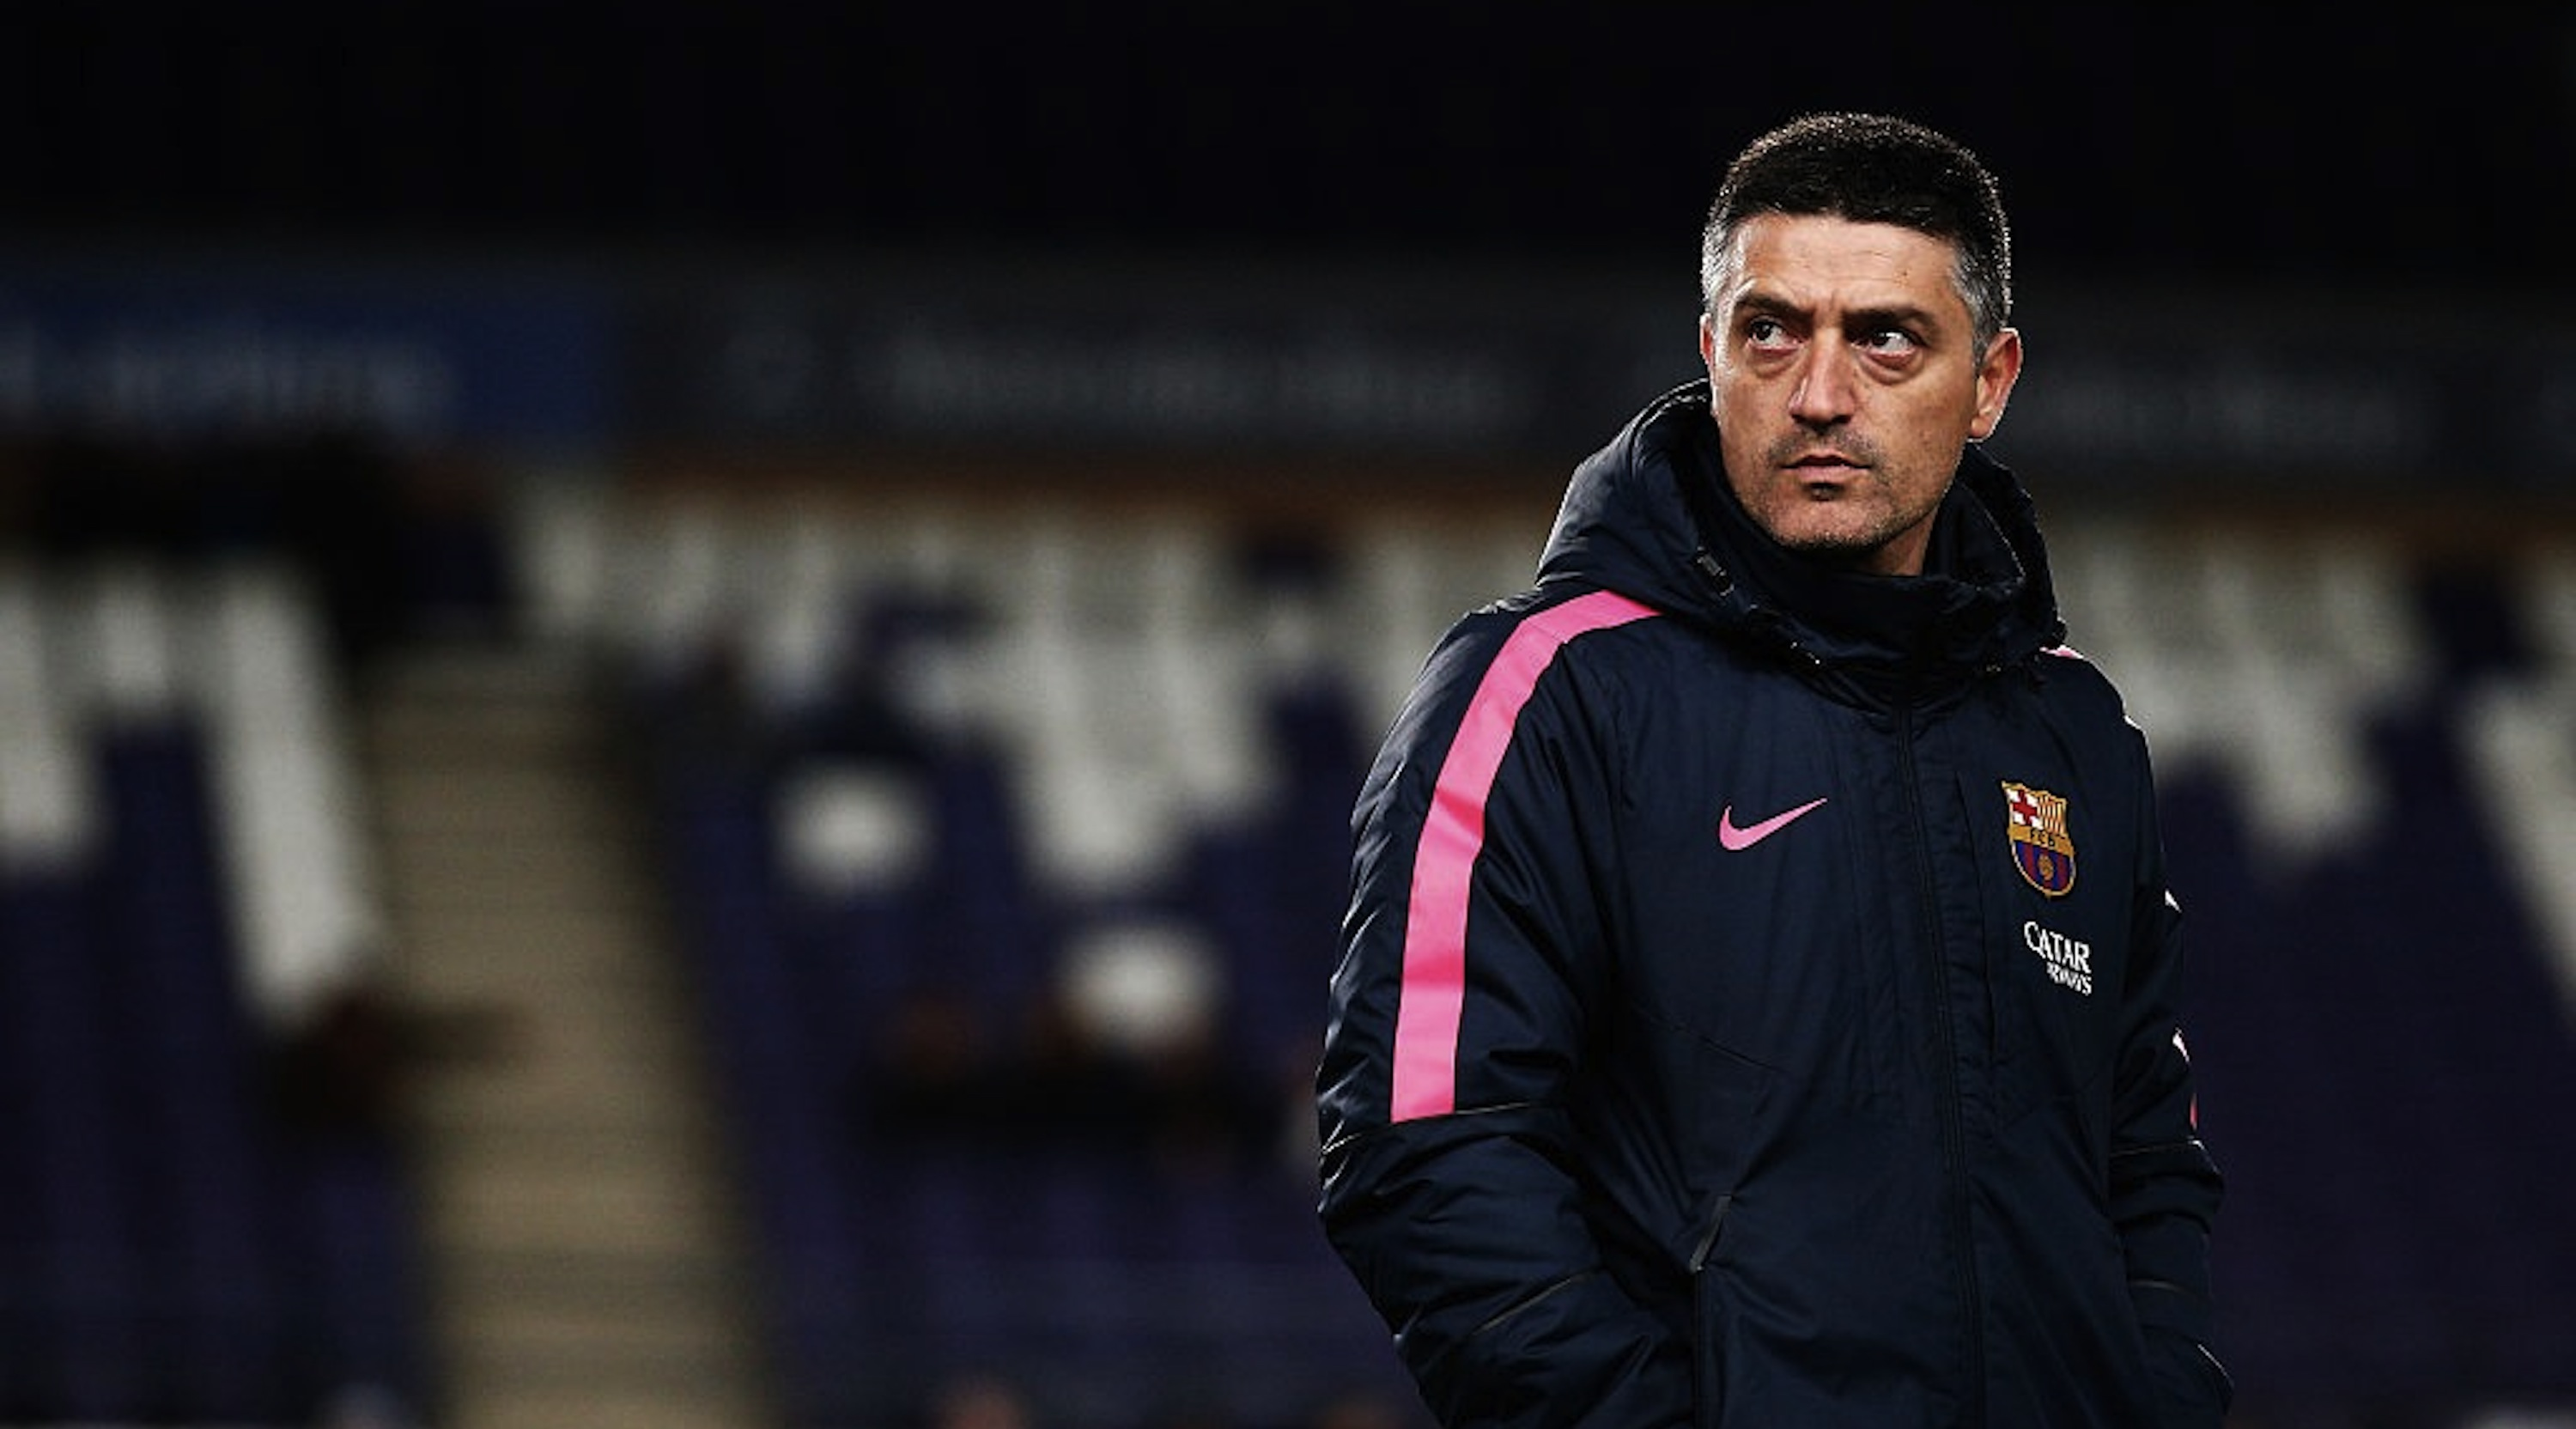 BRUSSELS, BELGIUM - FEBRUARY 23: Barcelona Coach, Francisco Javier Garcia Pimienta looks on prior to the UEFA Youth League Round of 16 match between RSC Anderlecht and FC Barcelona held at at Constant Vanden Stock Stadium on February 23, 2015 in Brussels, Belgium. (Photo by Dean Mouhtaropoulos/Getty Images)